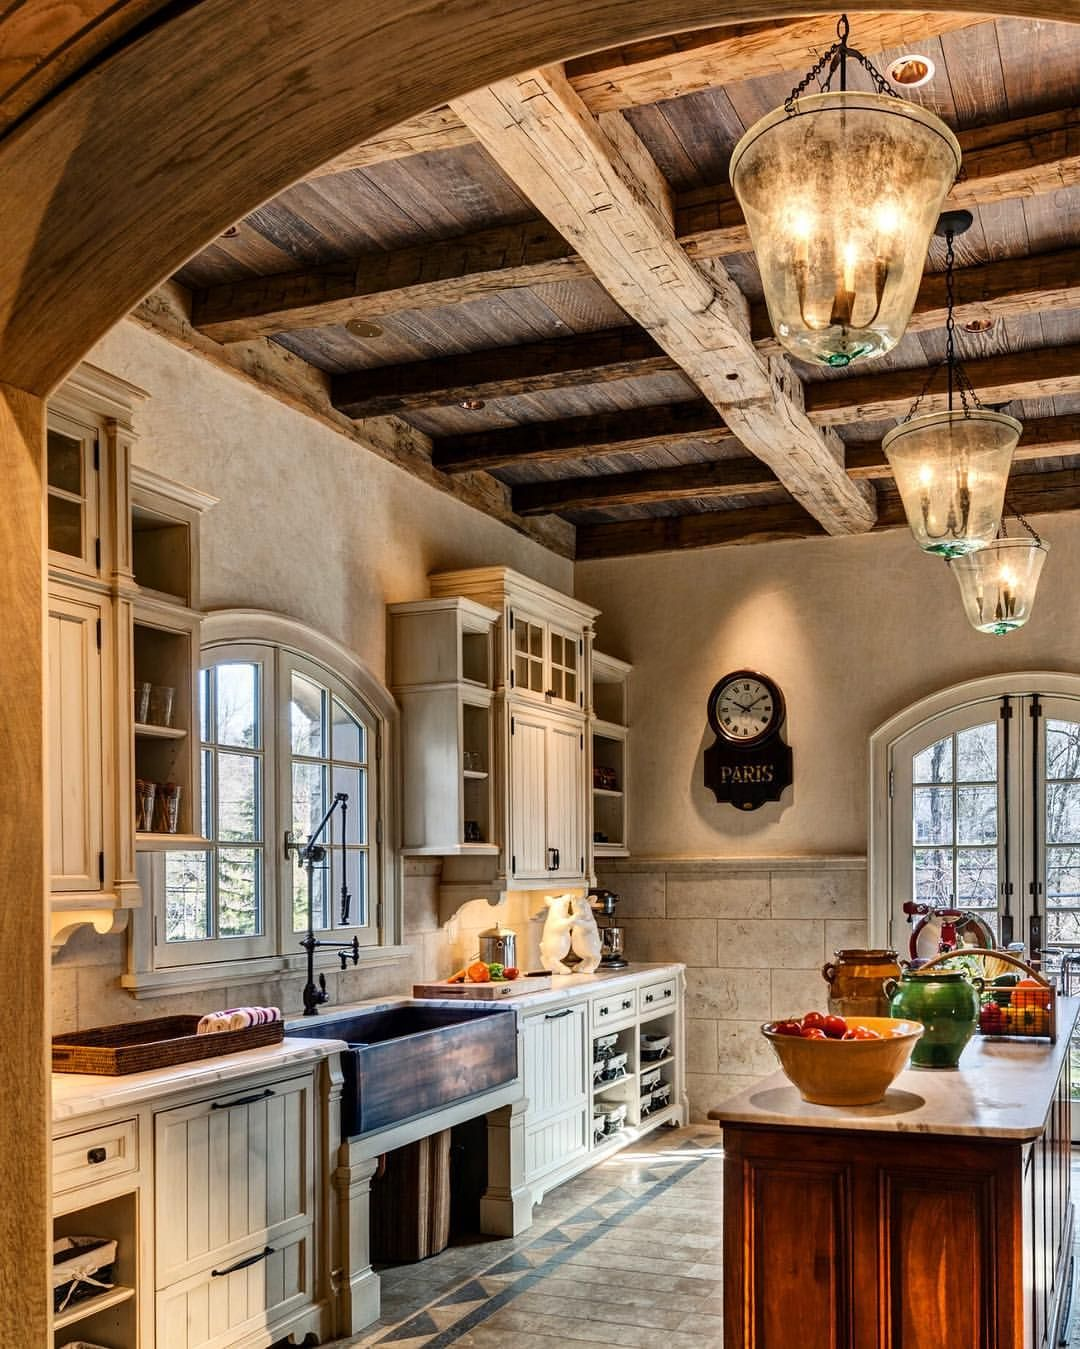 Charming Rustic Kitchen Ideas And Inspirations: Rustic And Elegant Kitchen.